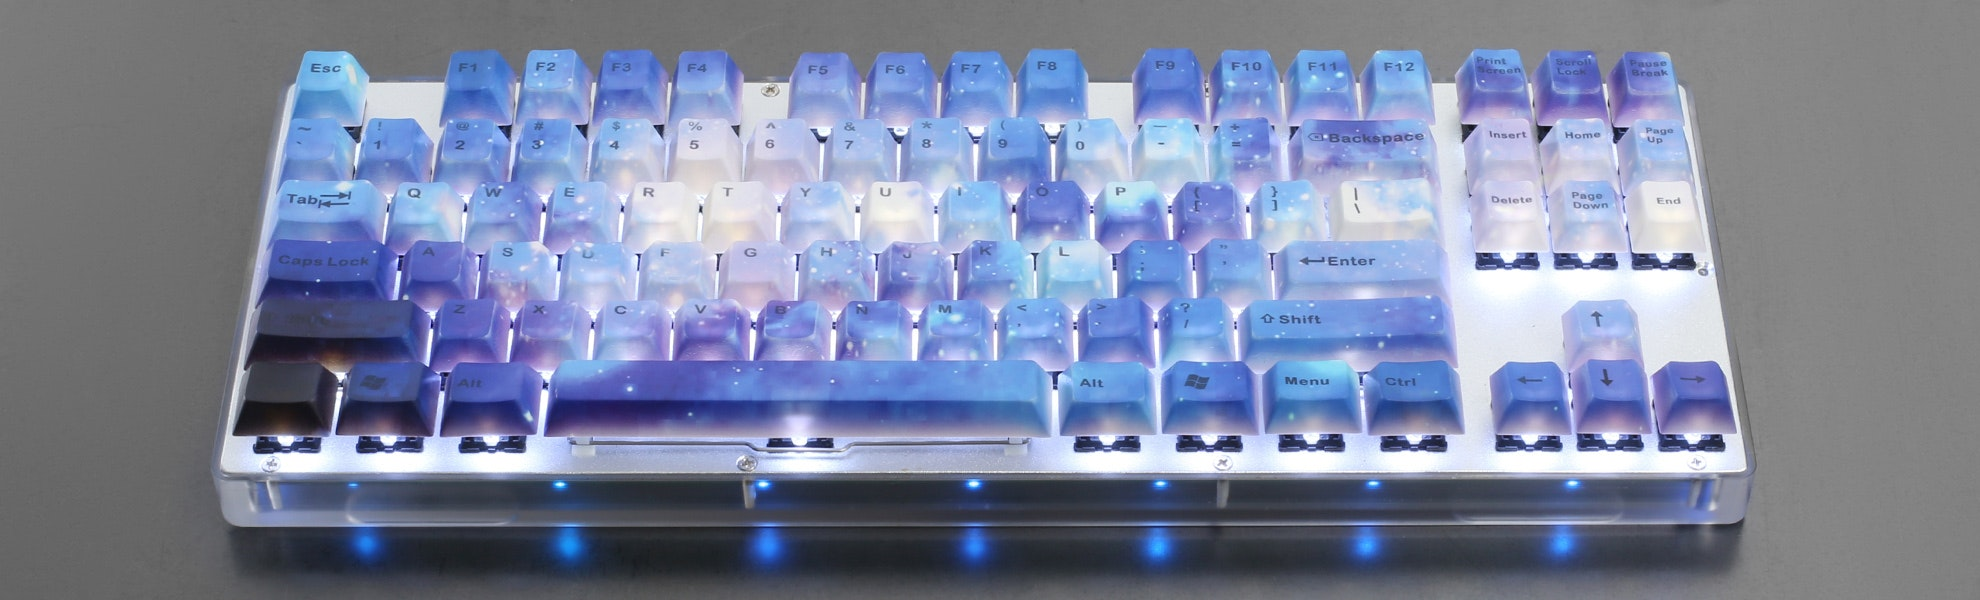 Milky Way PBT Dye-Subbed Keycap Set